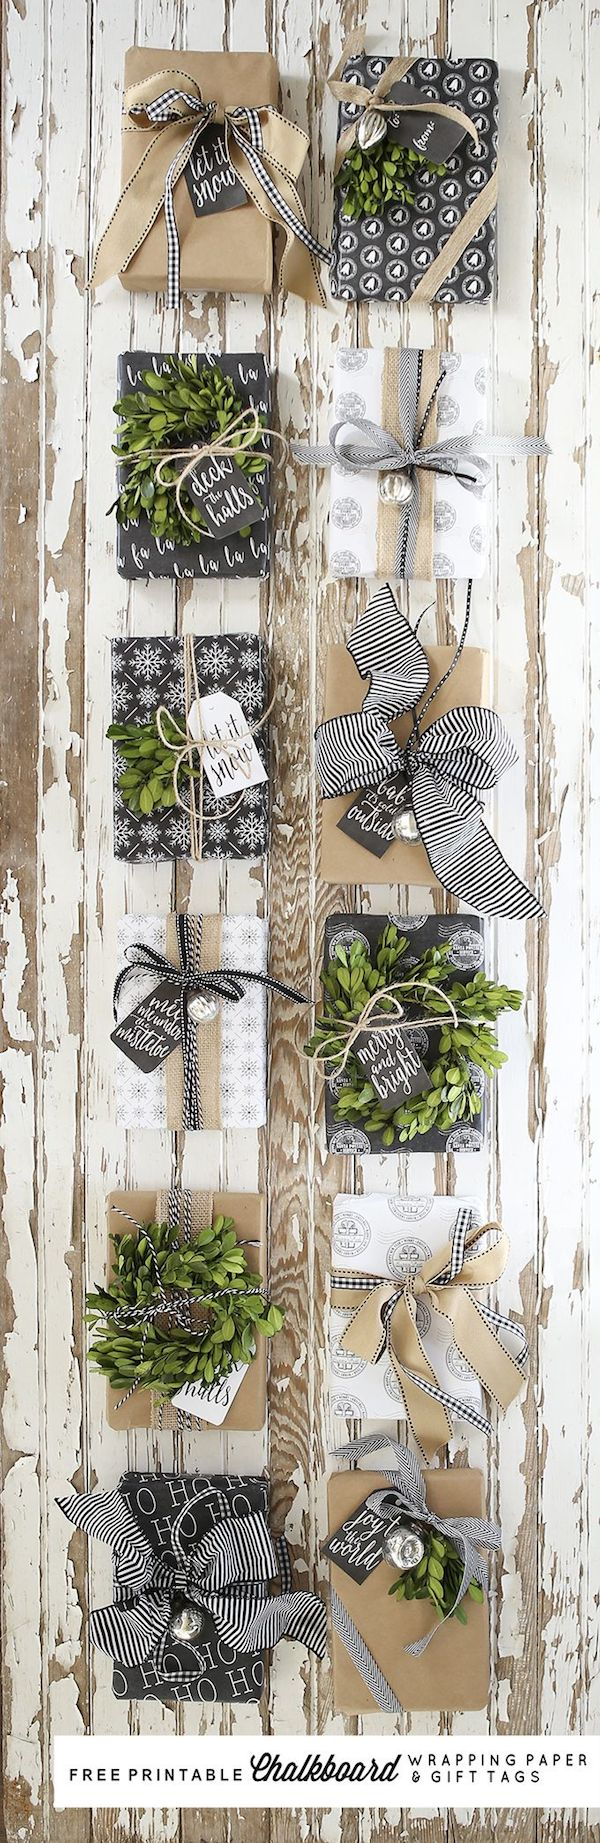 Gift Wrapping {Ideas, Tips & Tricks!}